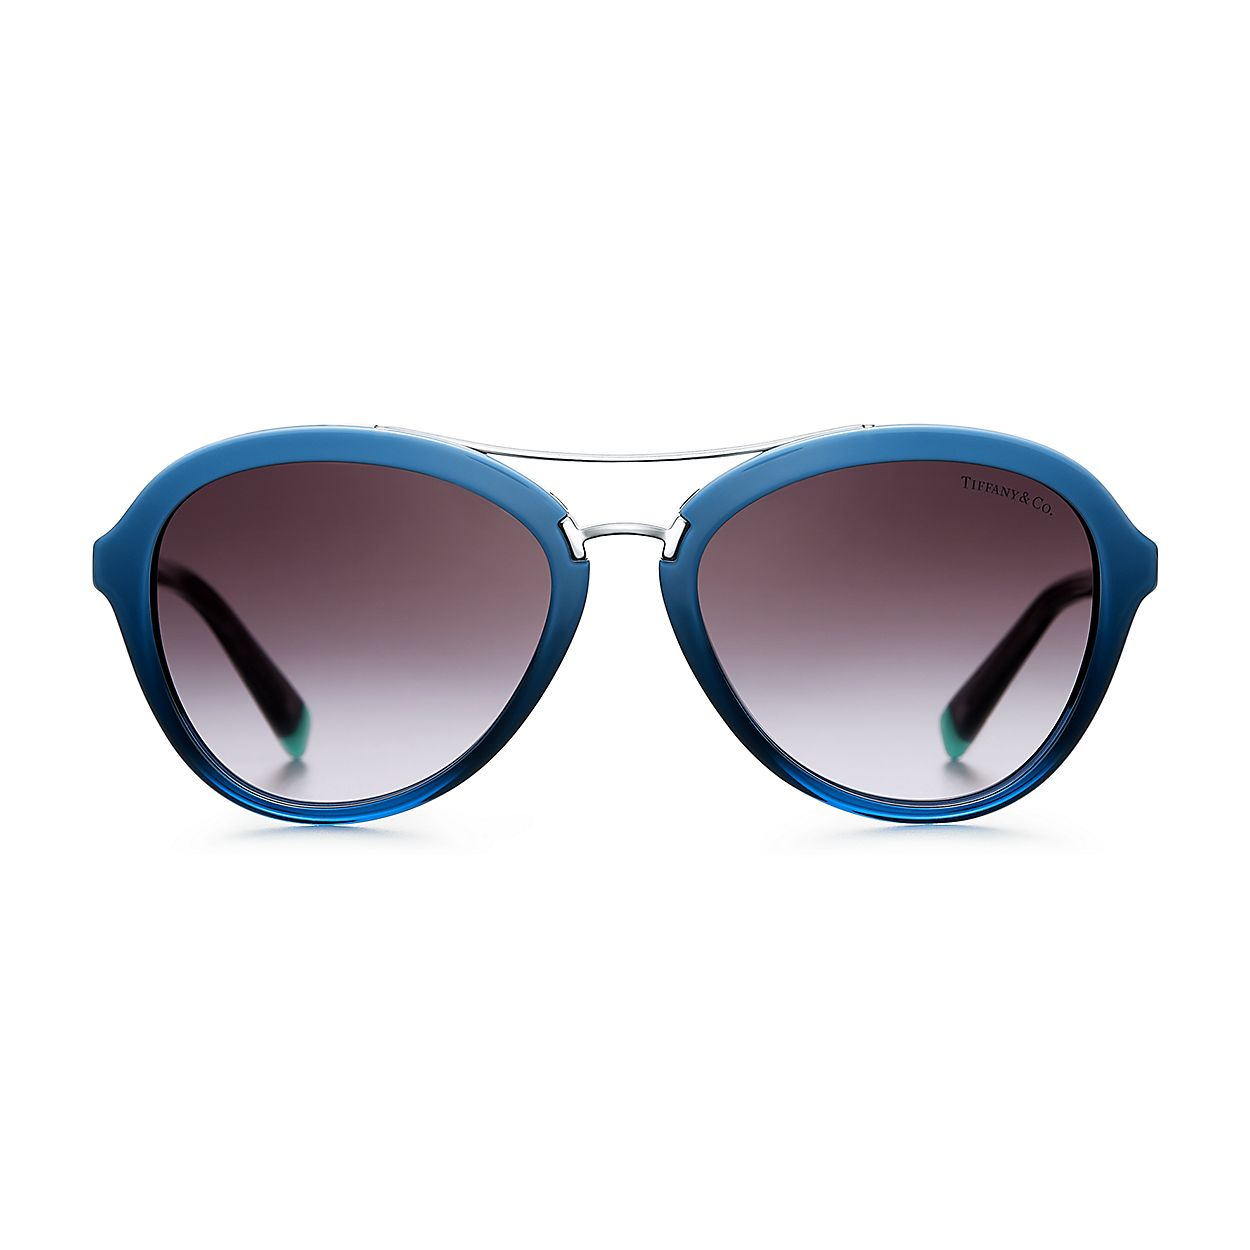 ea8953723f5b Tiffany T aviator sunglasses in blue acetate.